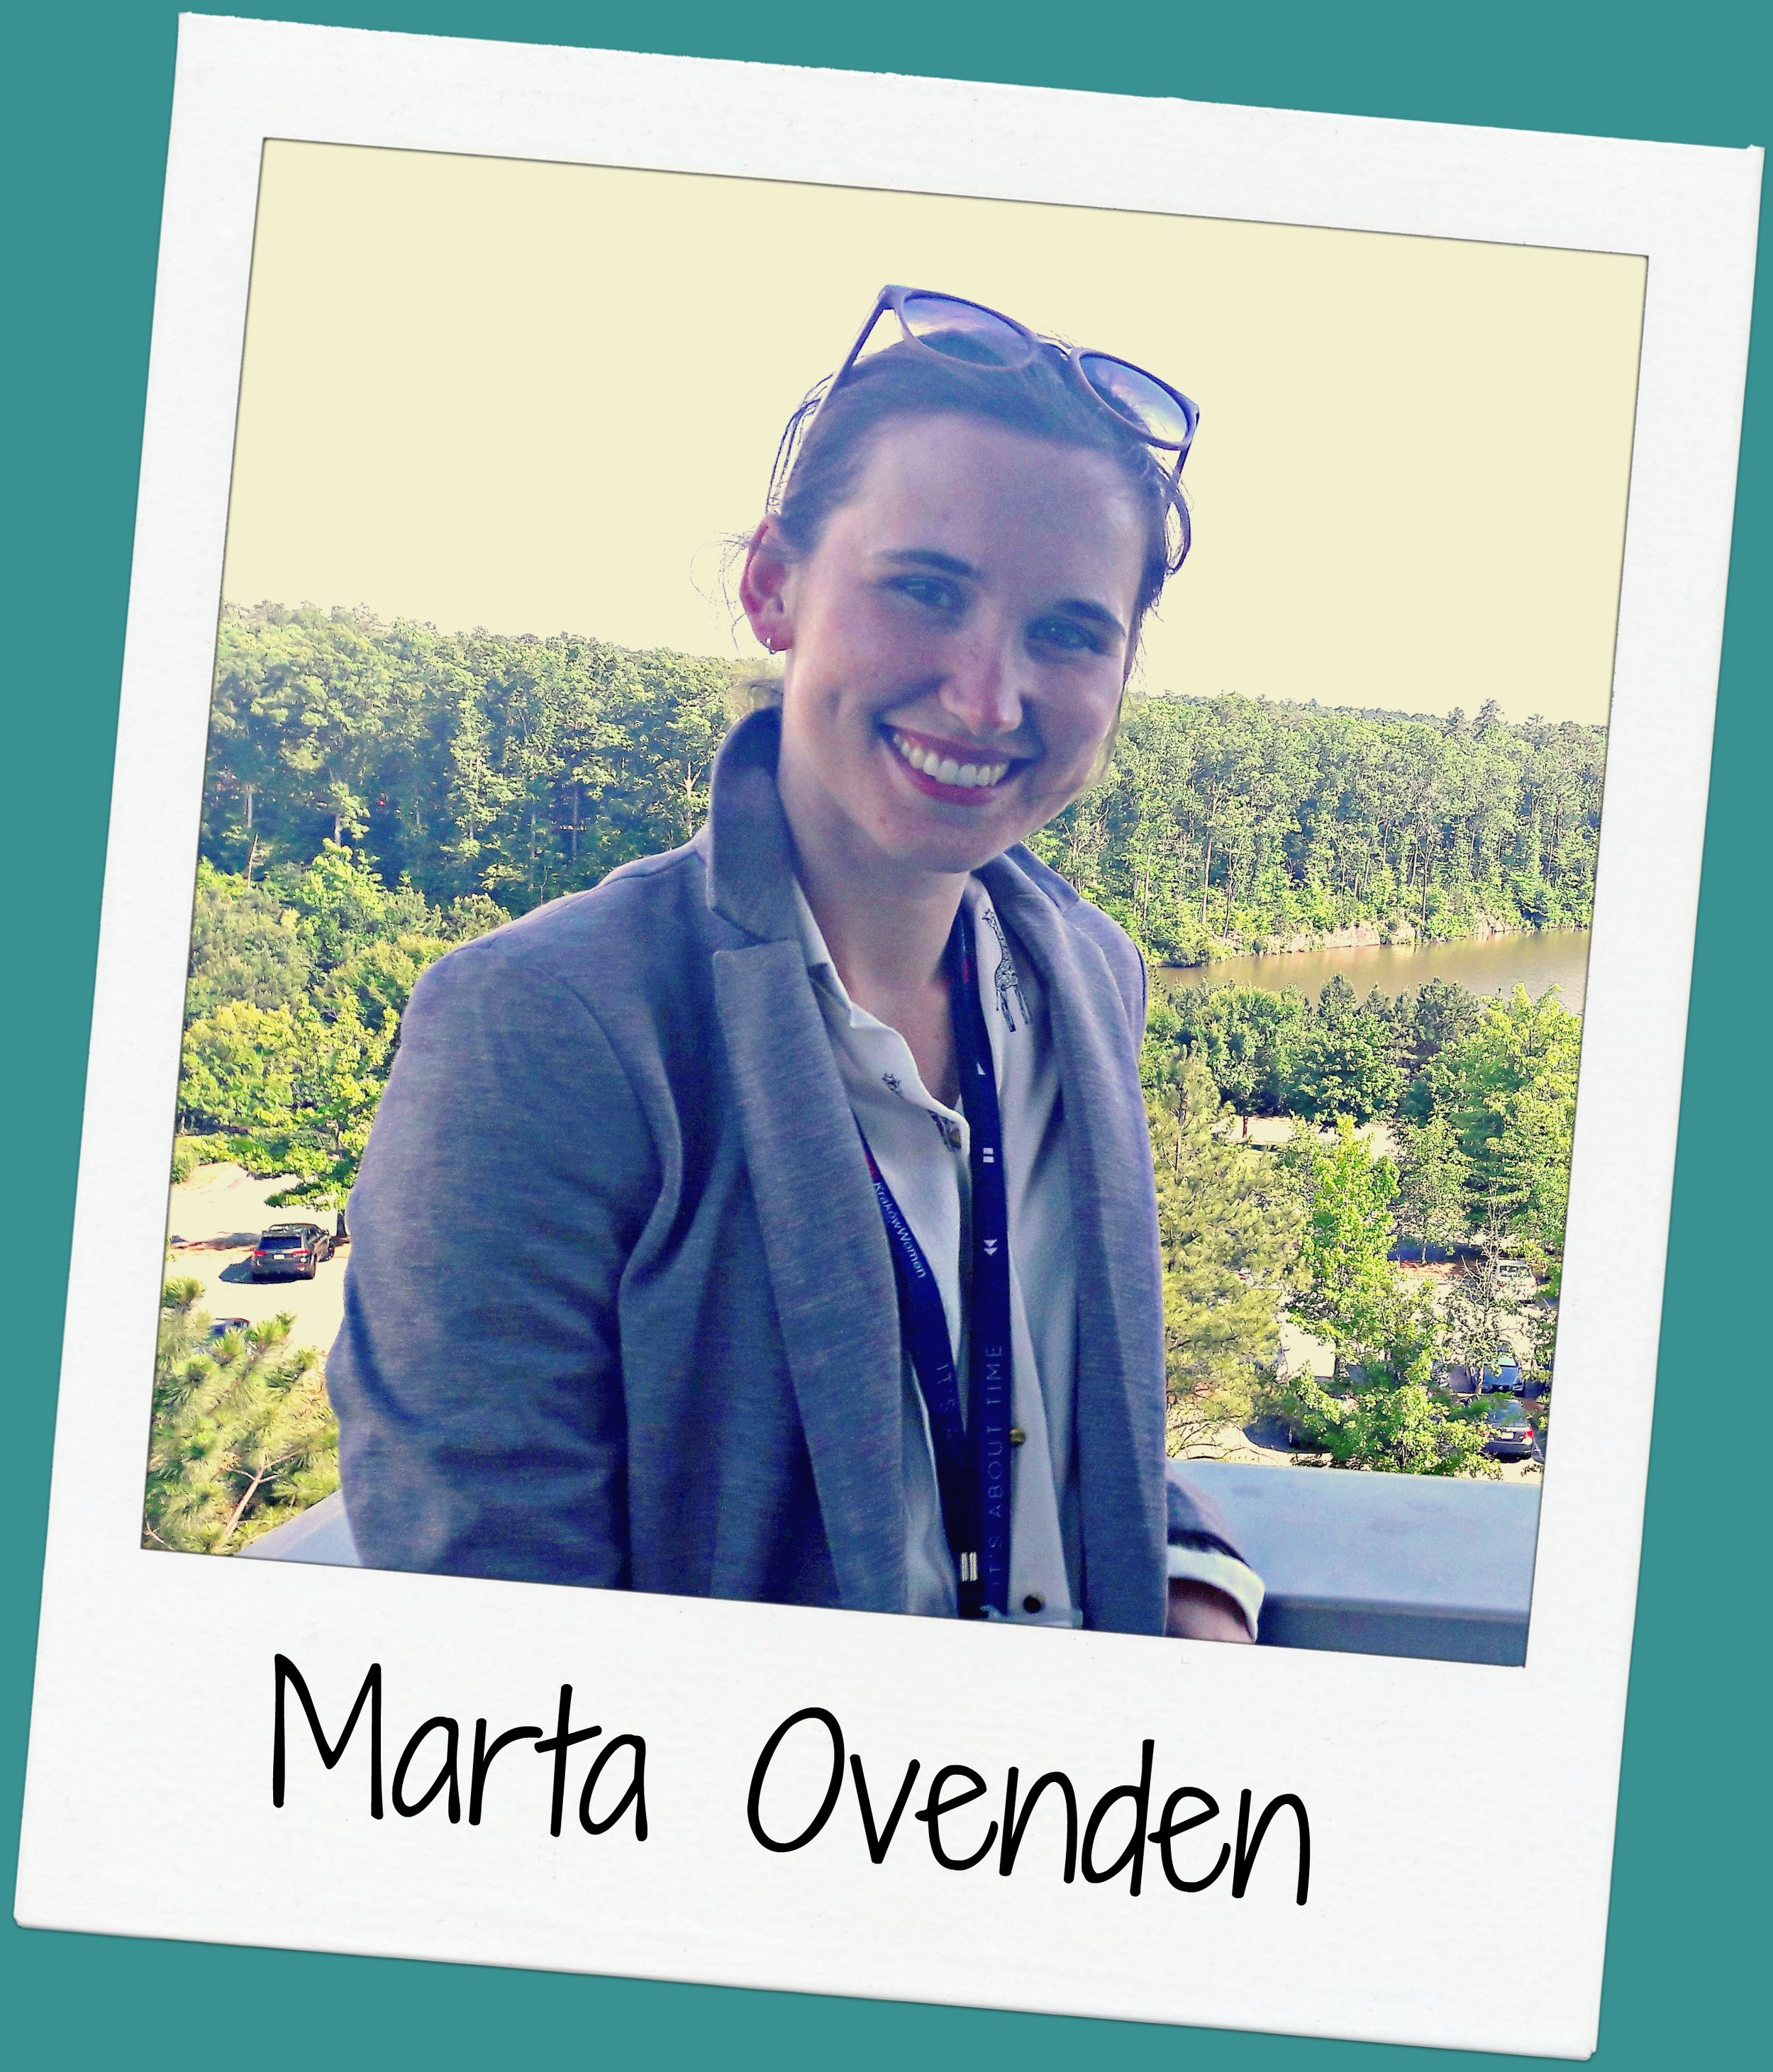 Marta has been working for cisco since Feb 2013. Currently as a Business Analyst for Business Intelligence and Analytics team. Privately, mum to 2 year old Sebastian, fan of star wars. In her free time she loves reading, playing board games, watching Sci-fi series, traveling and running.